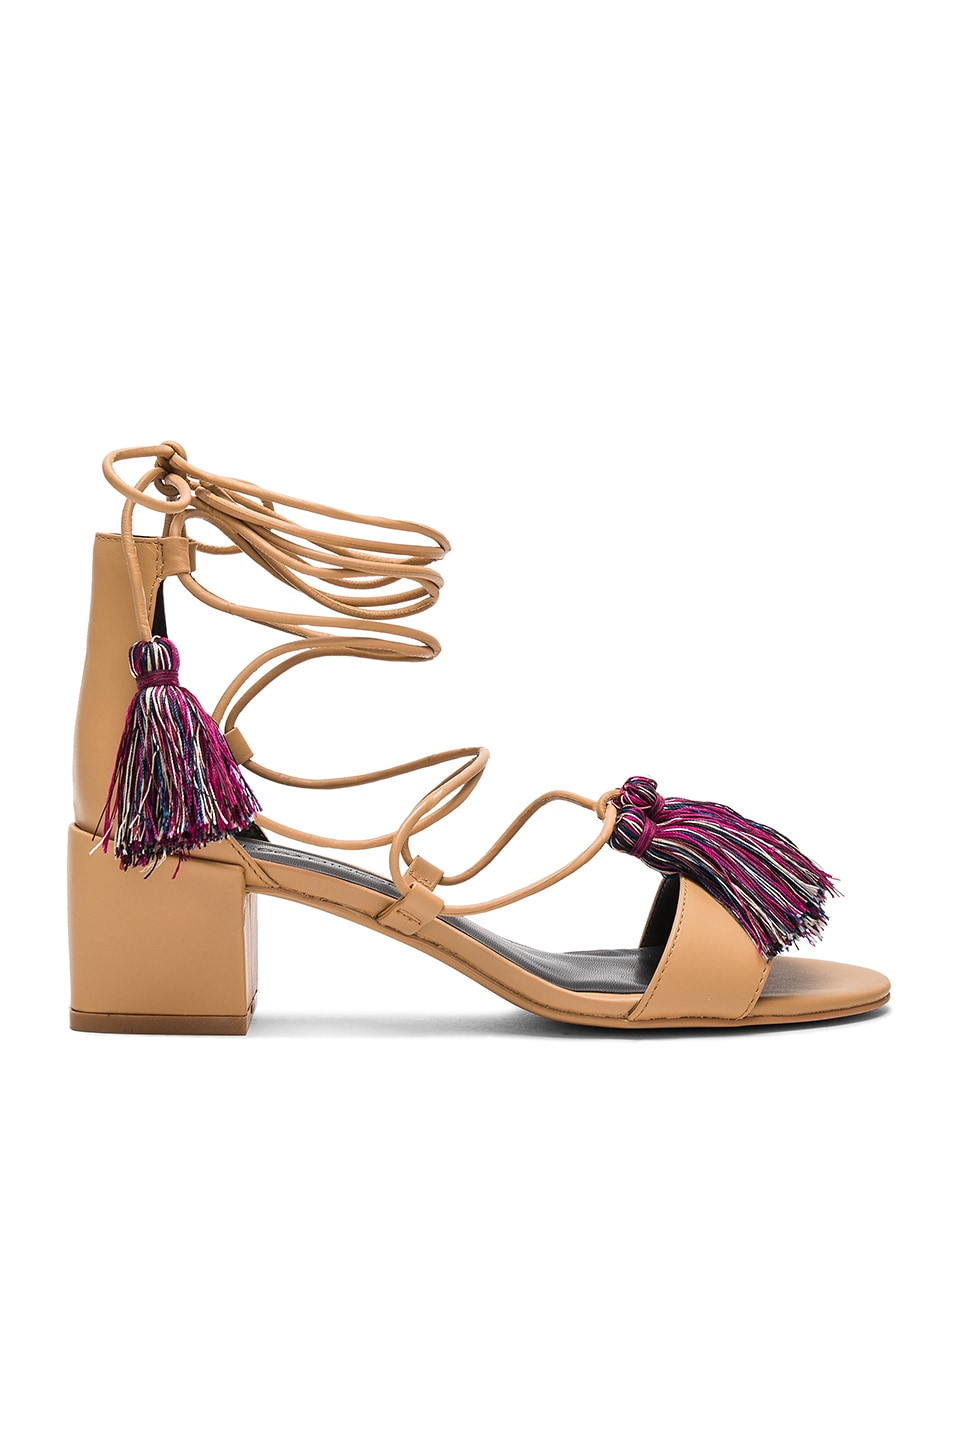 Photo of Isla Heel by Rebecca Minkoff shoes